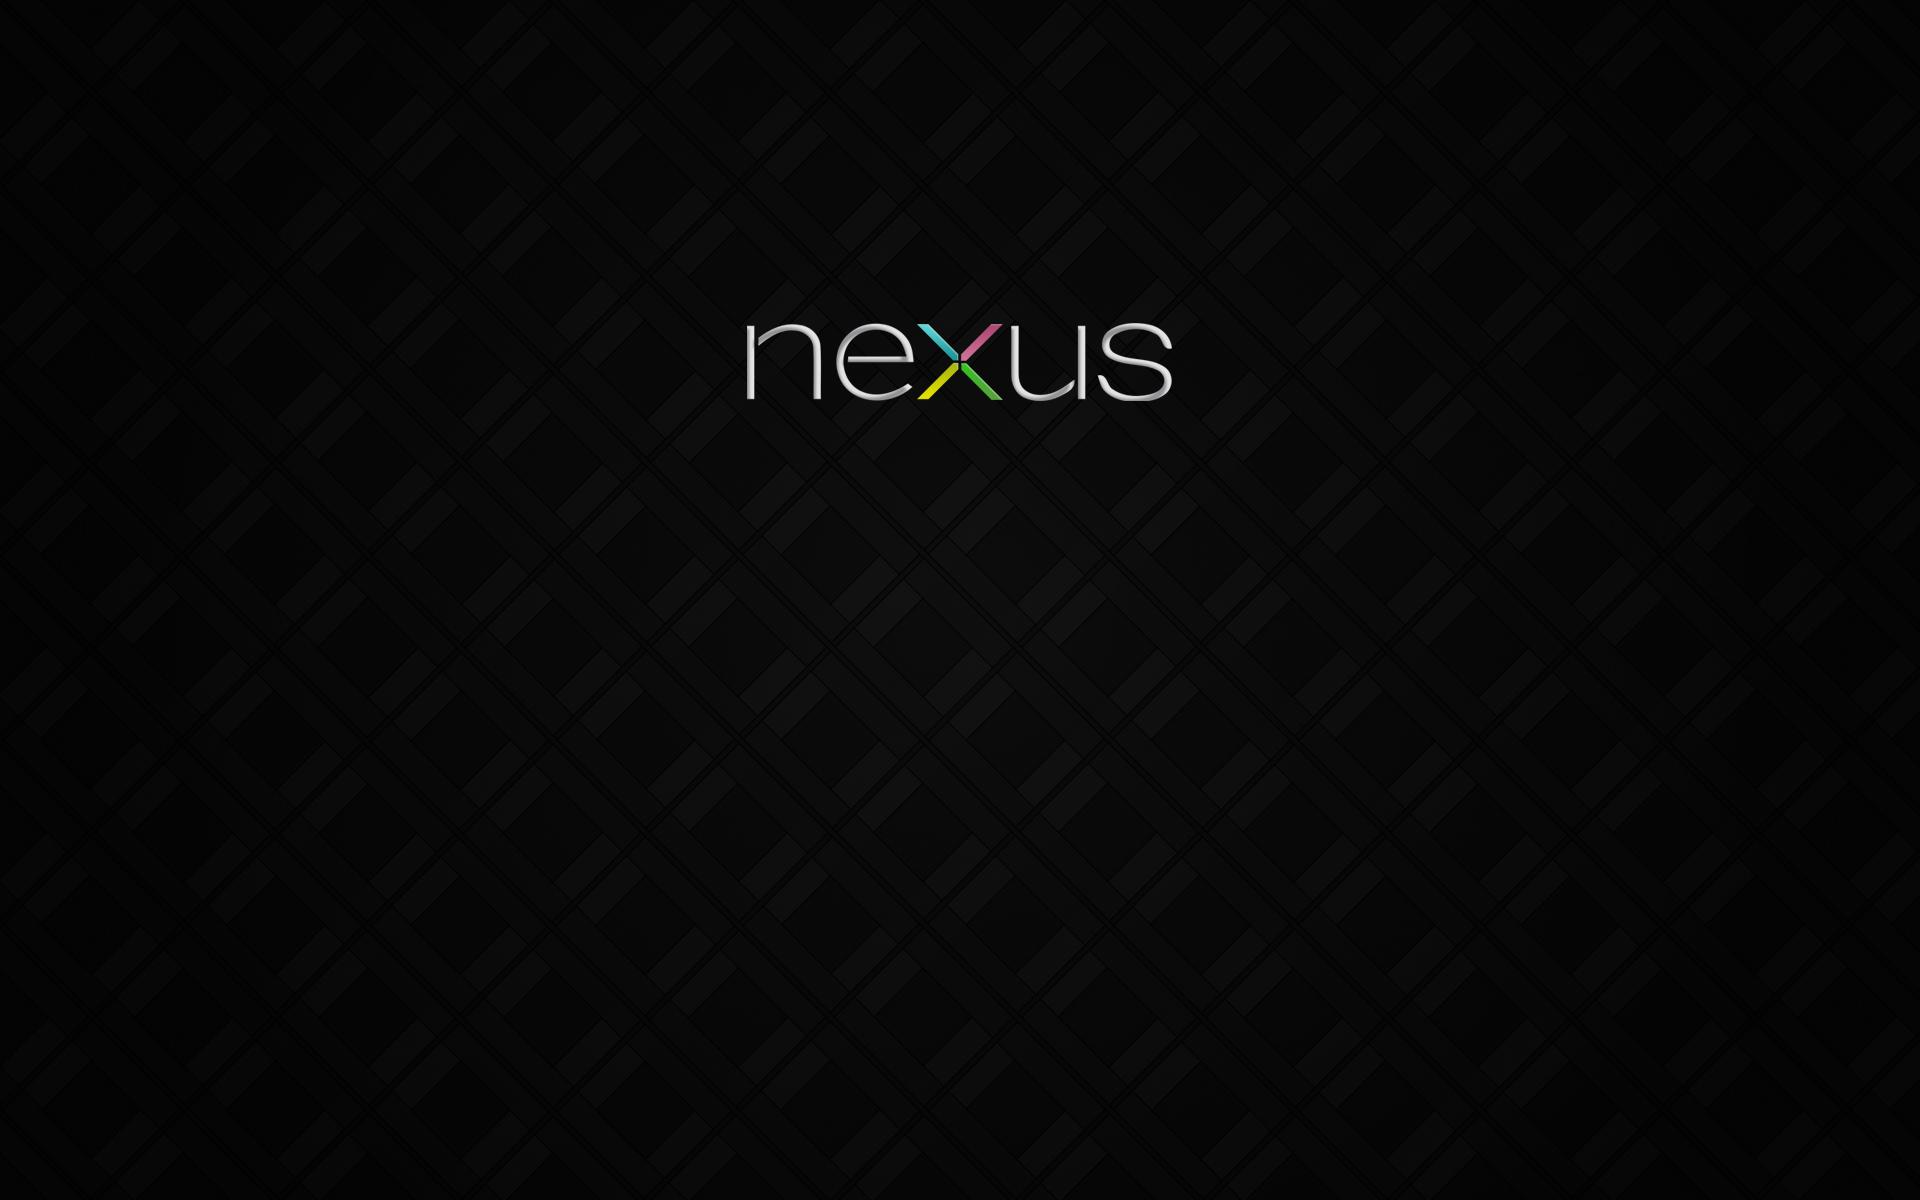 Download Android Nexus Wallpaper Pictures